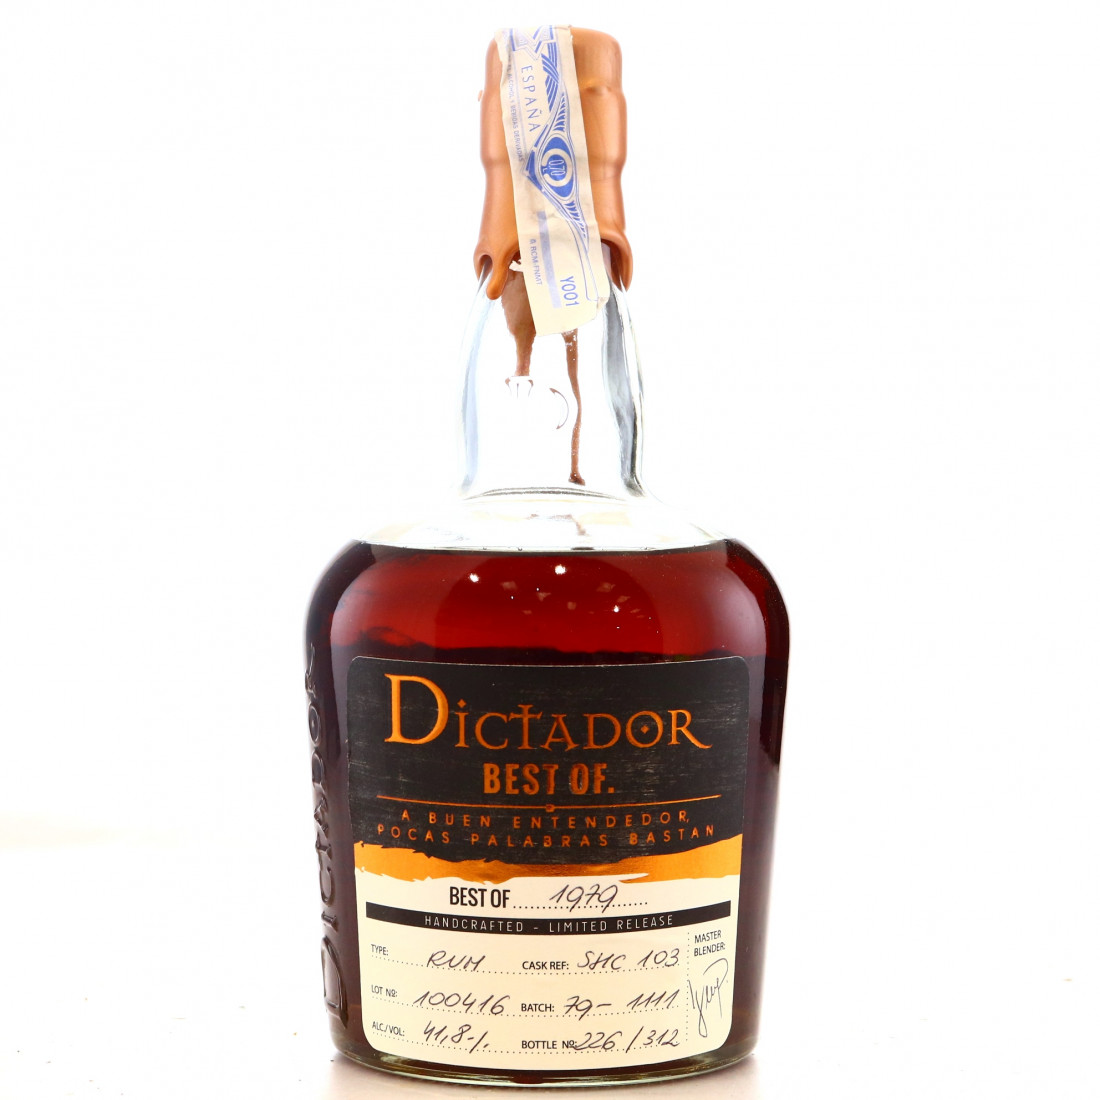 Dictador Best of 1979 Limited Release